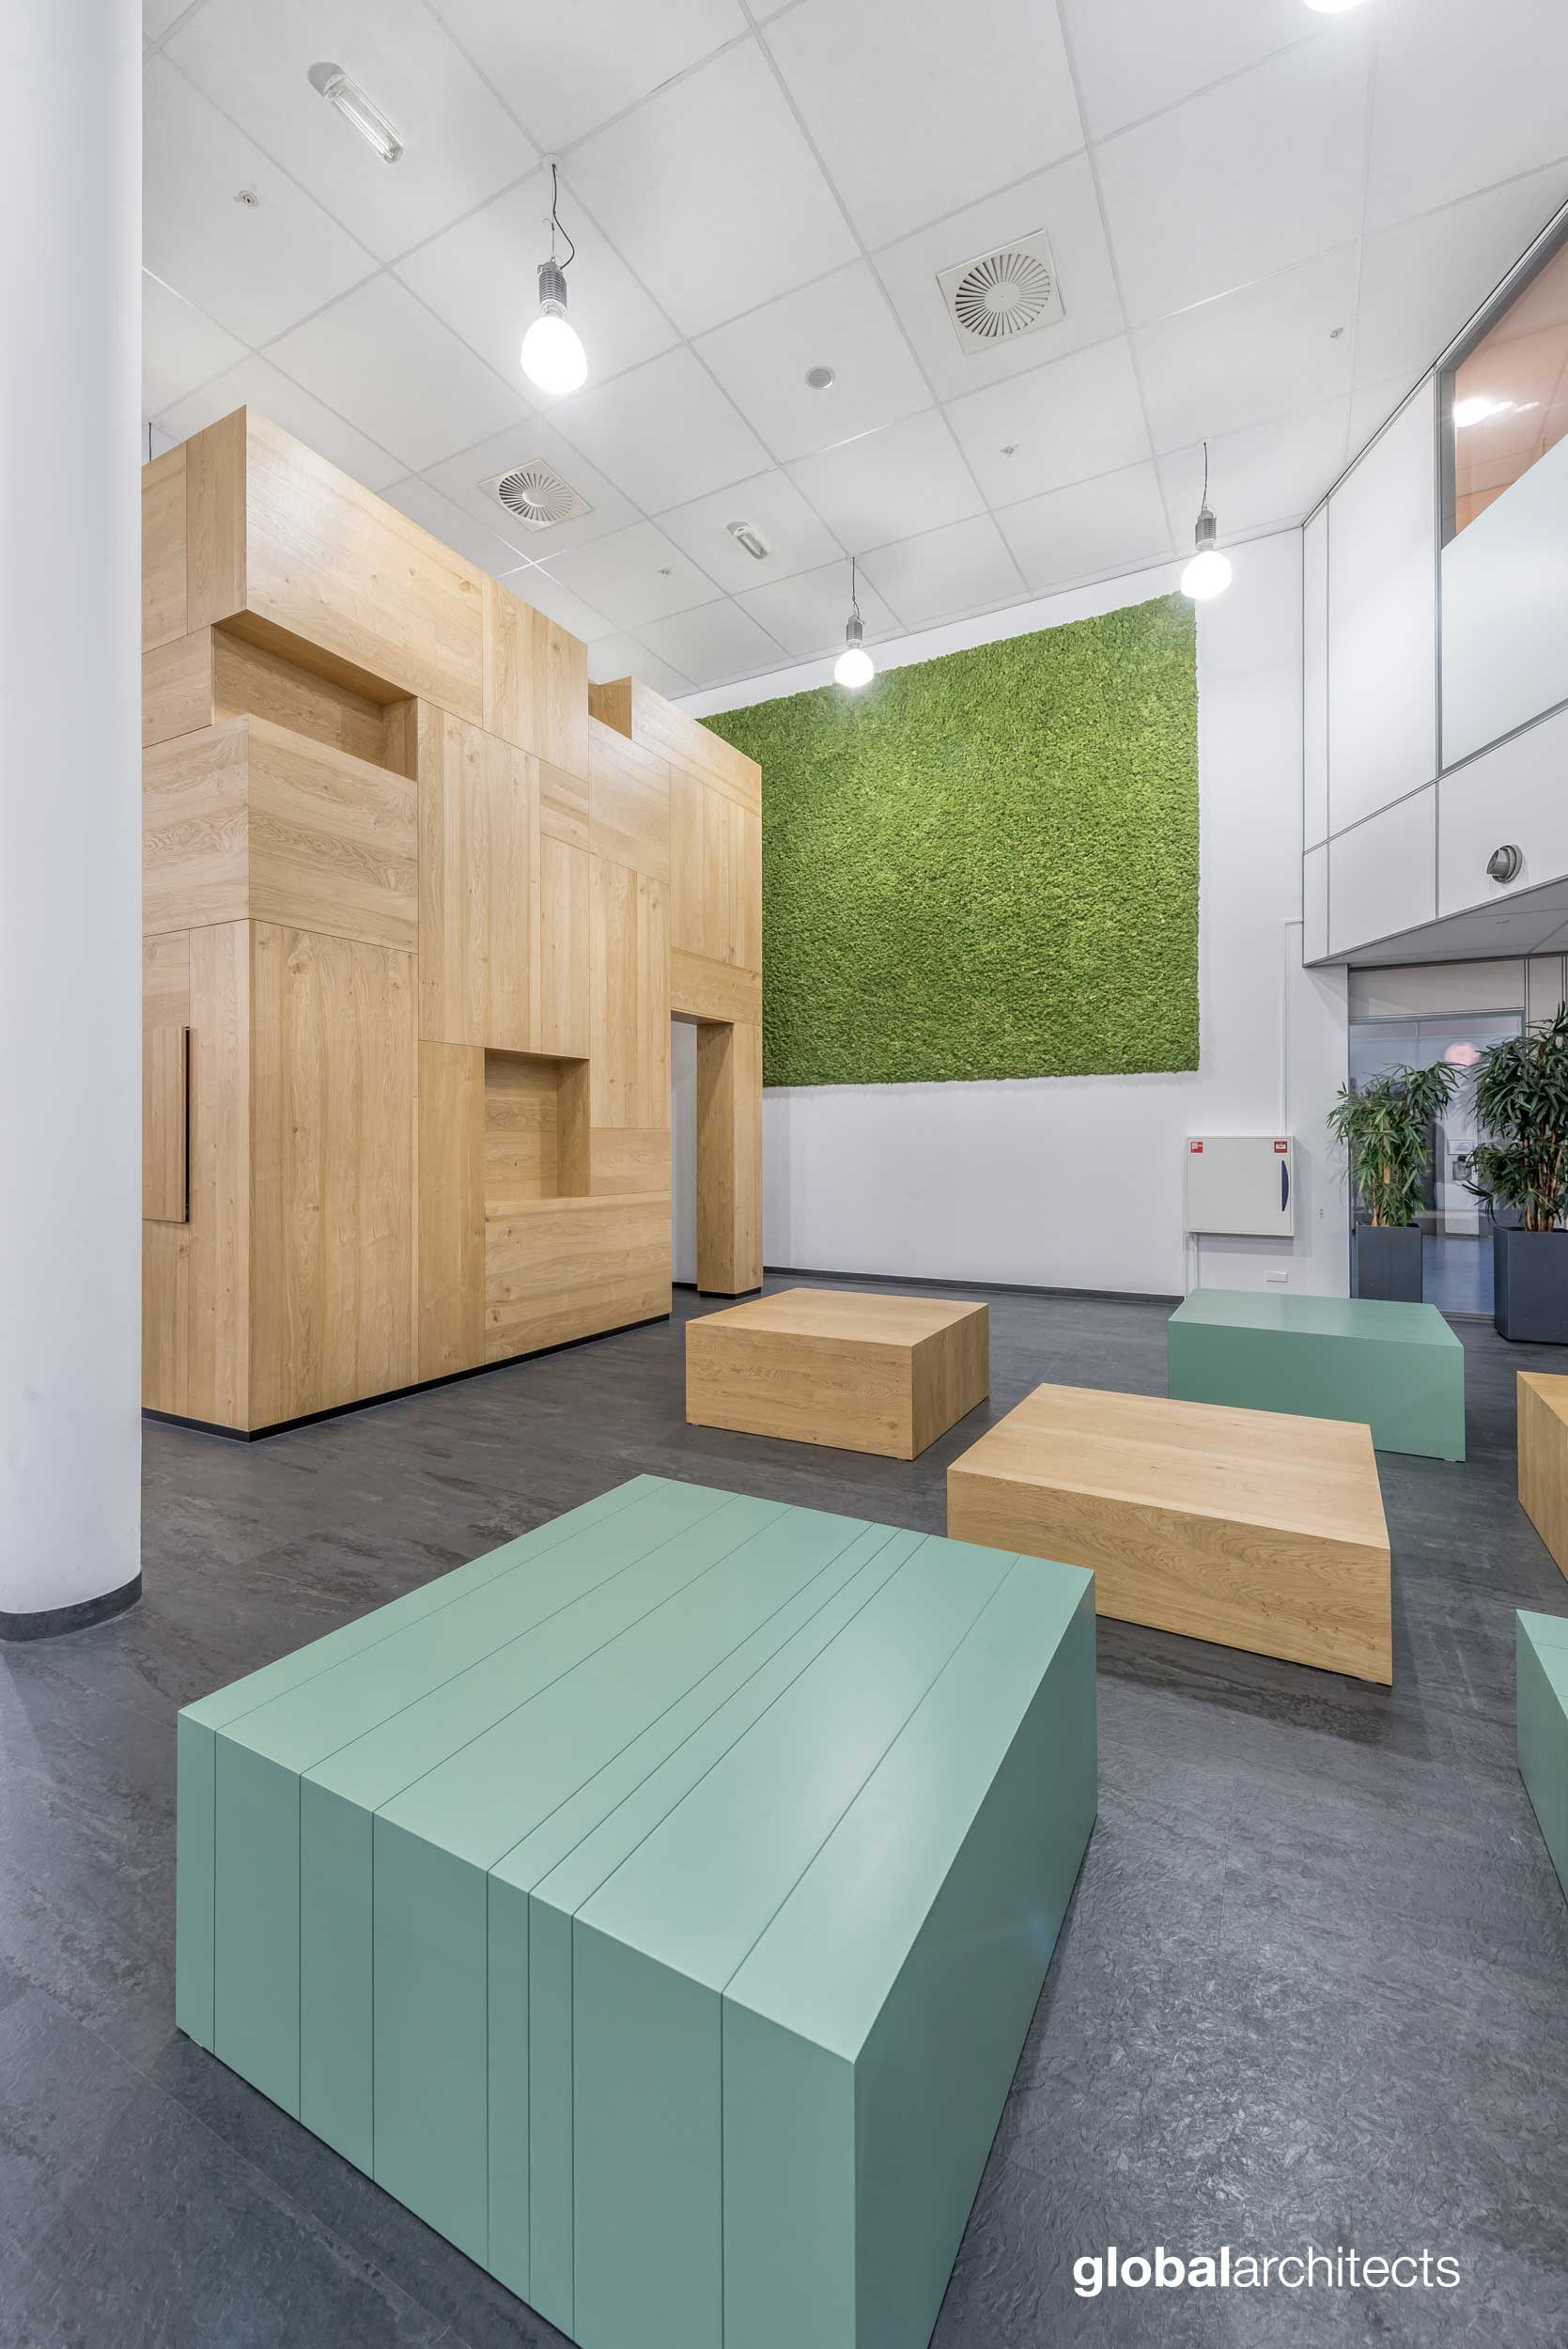 roc mondriaan school interieur architectenbureau architect innovatie